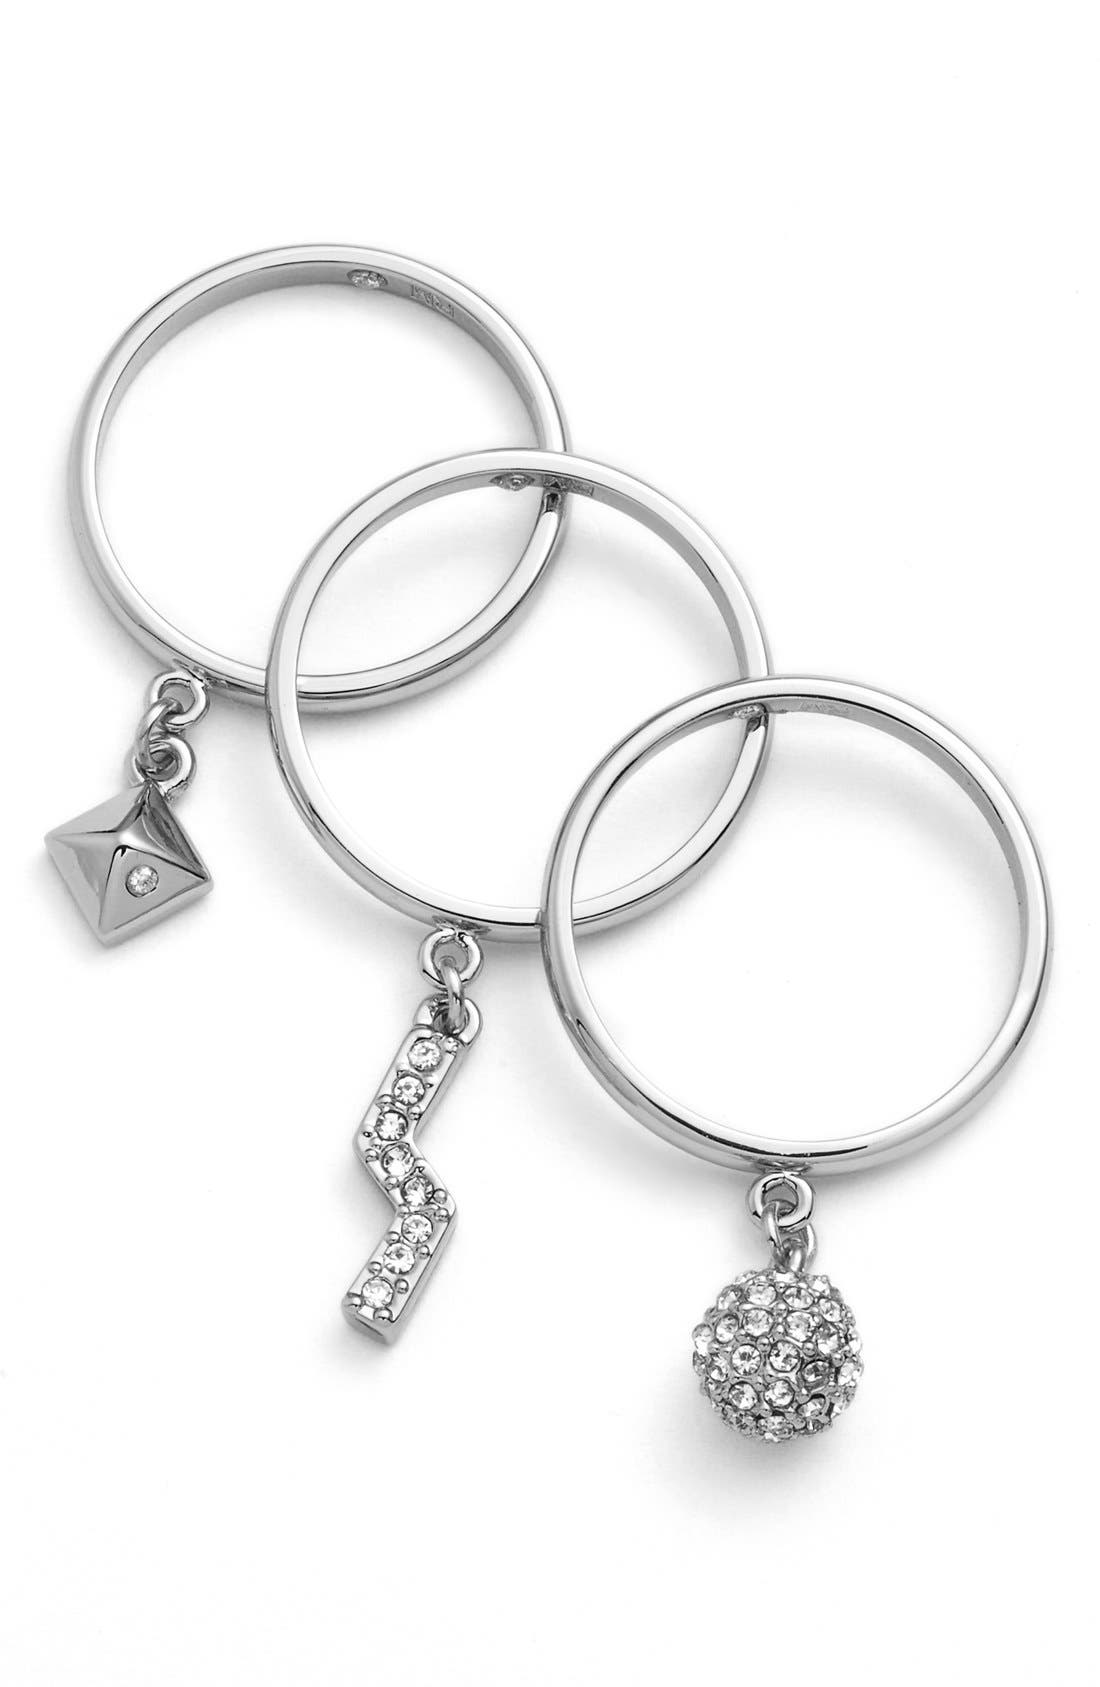 Alternate Image 2  - Rebecca Minkoff 'Jewel Box' Stackable Charm Rings (Set of 3)